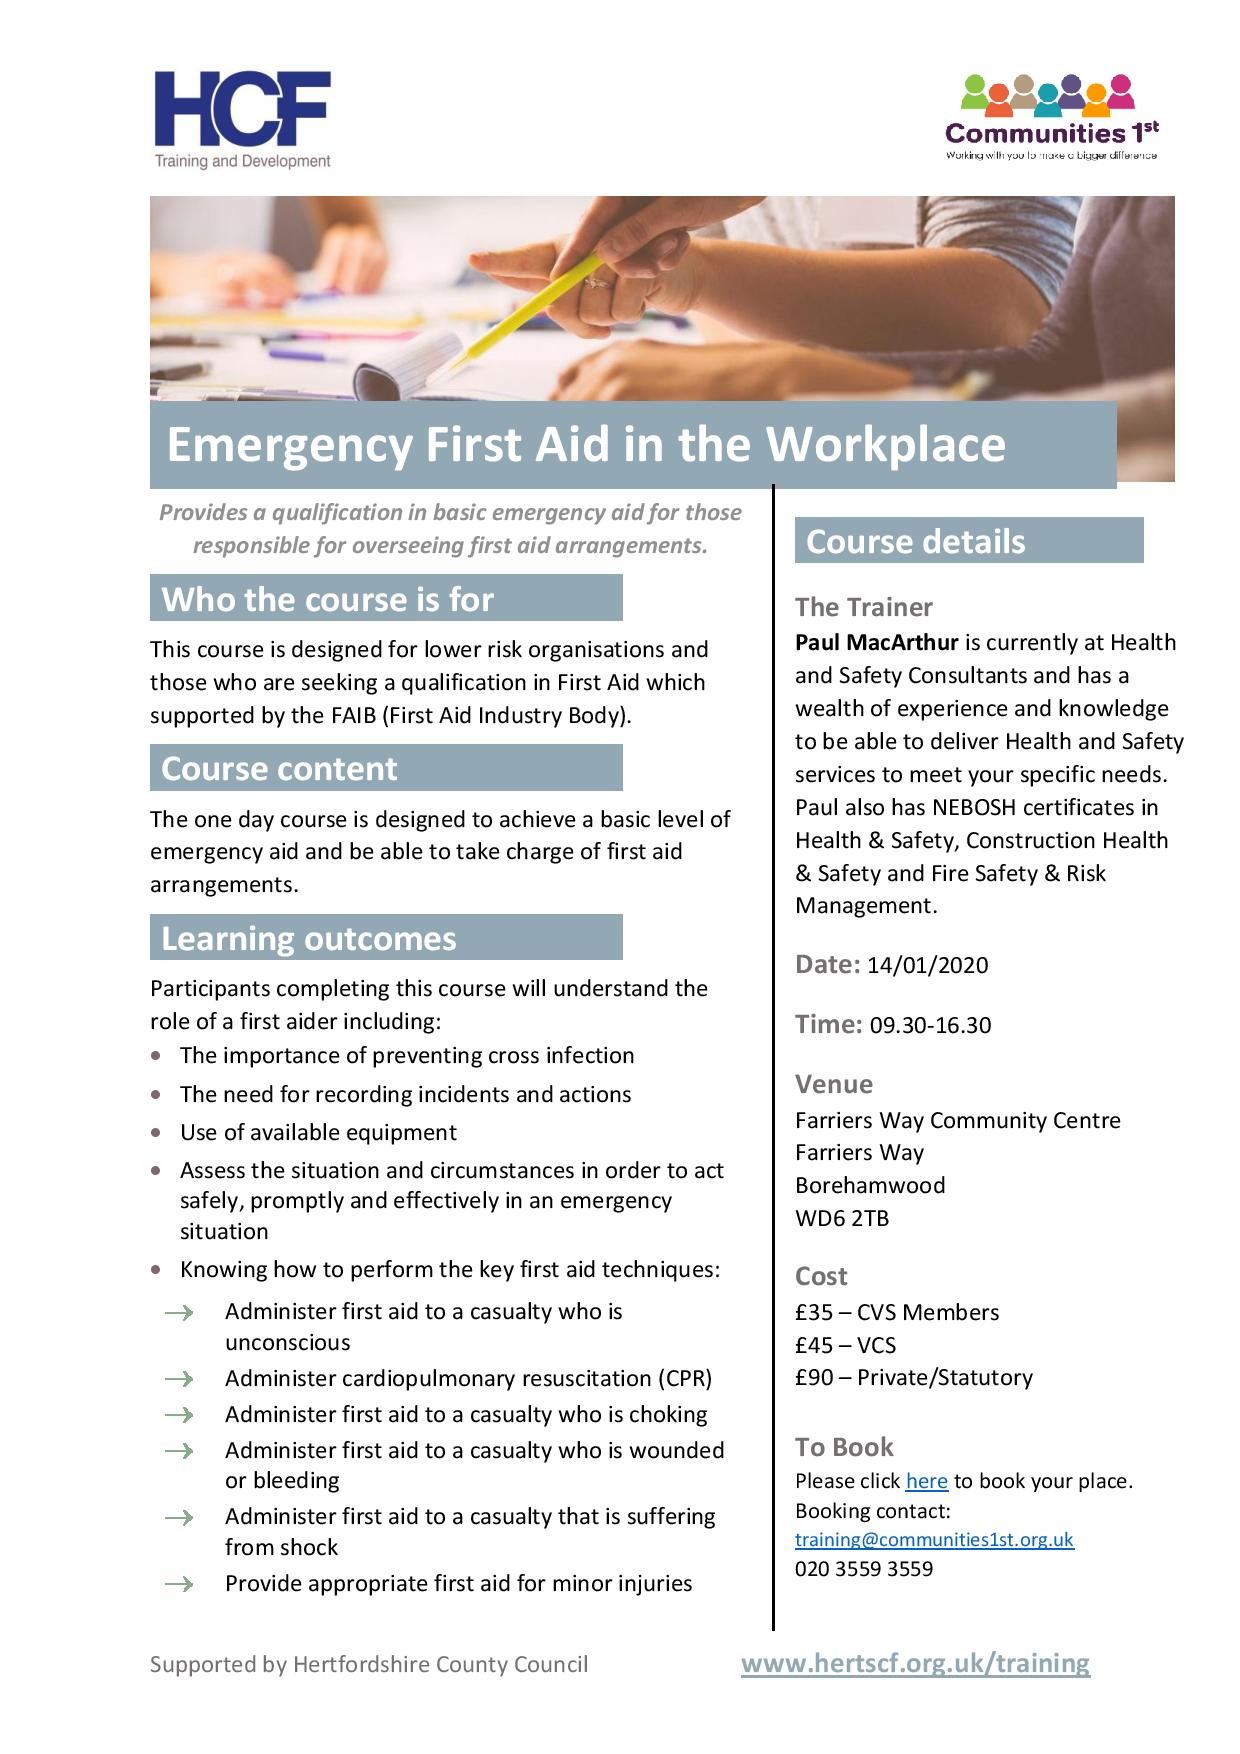 Emergency First Aid in the Workplace | Communities 1st